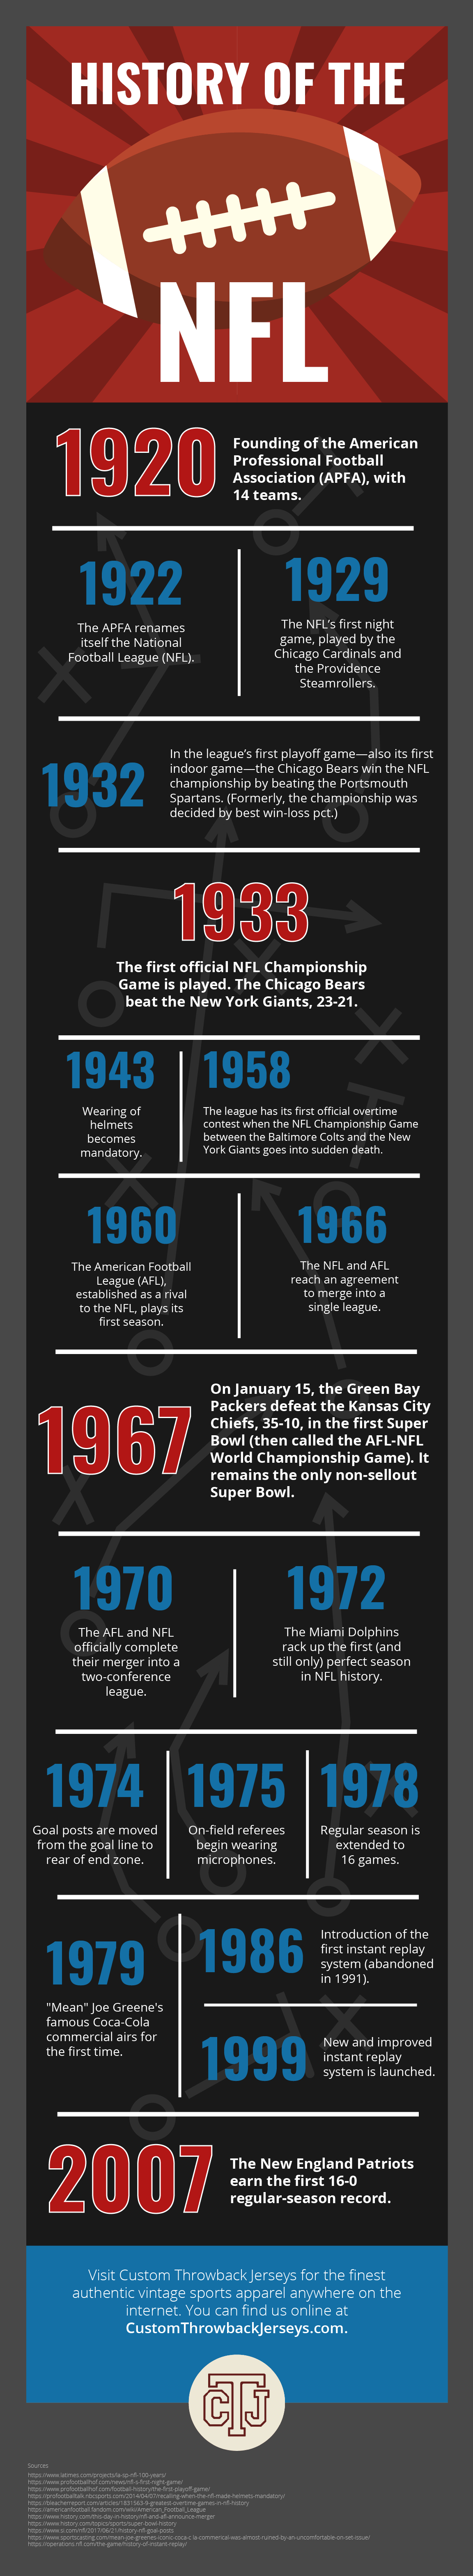 History of the NFL Infographic